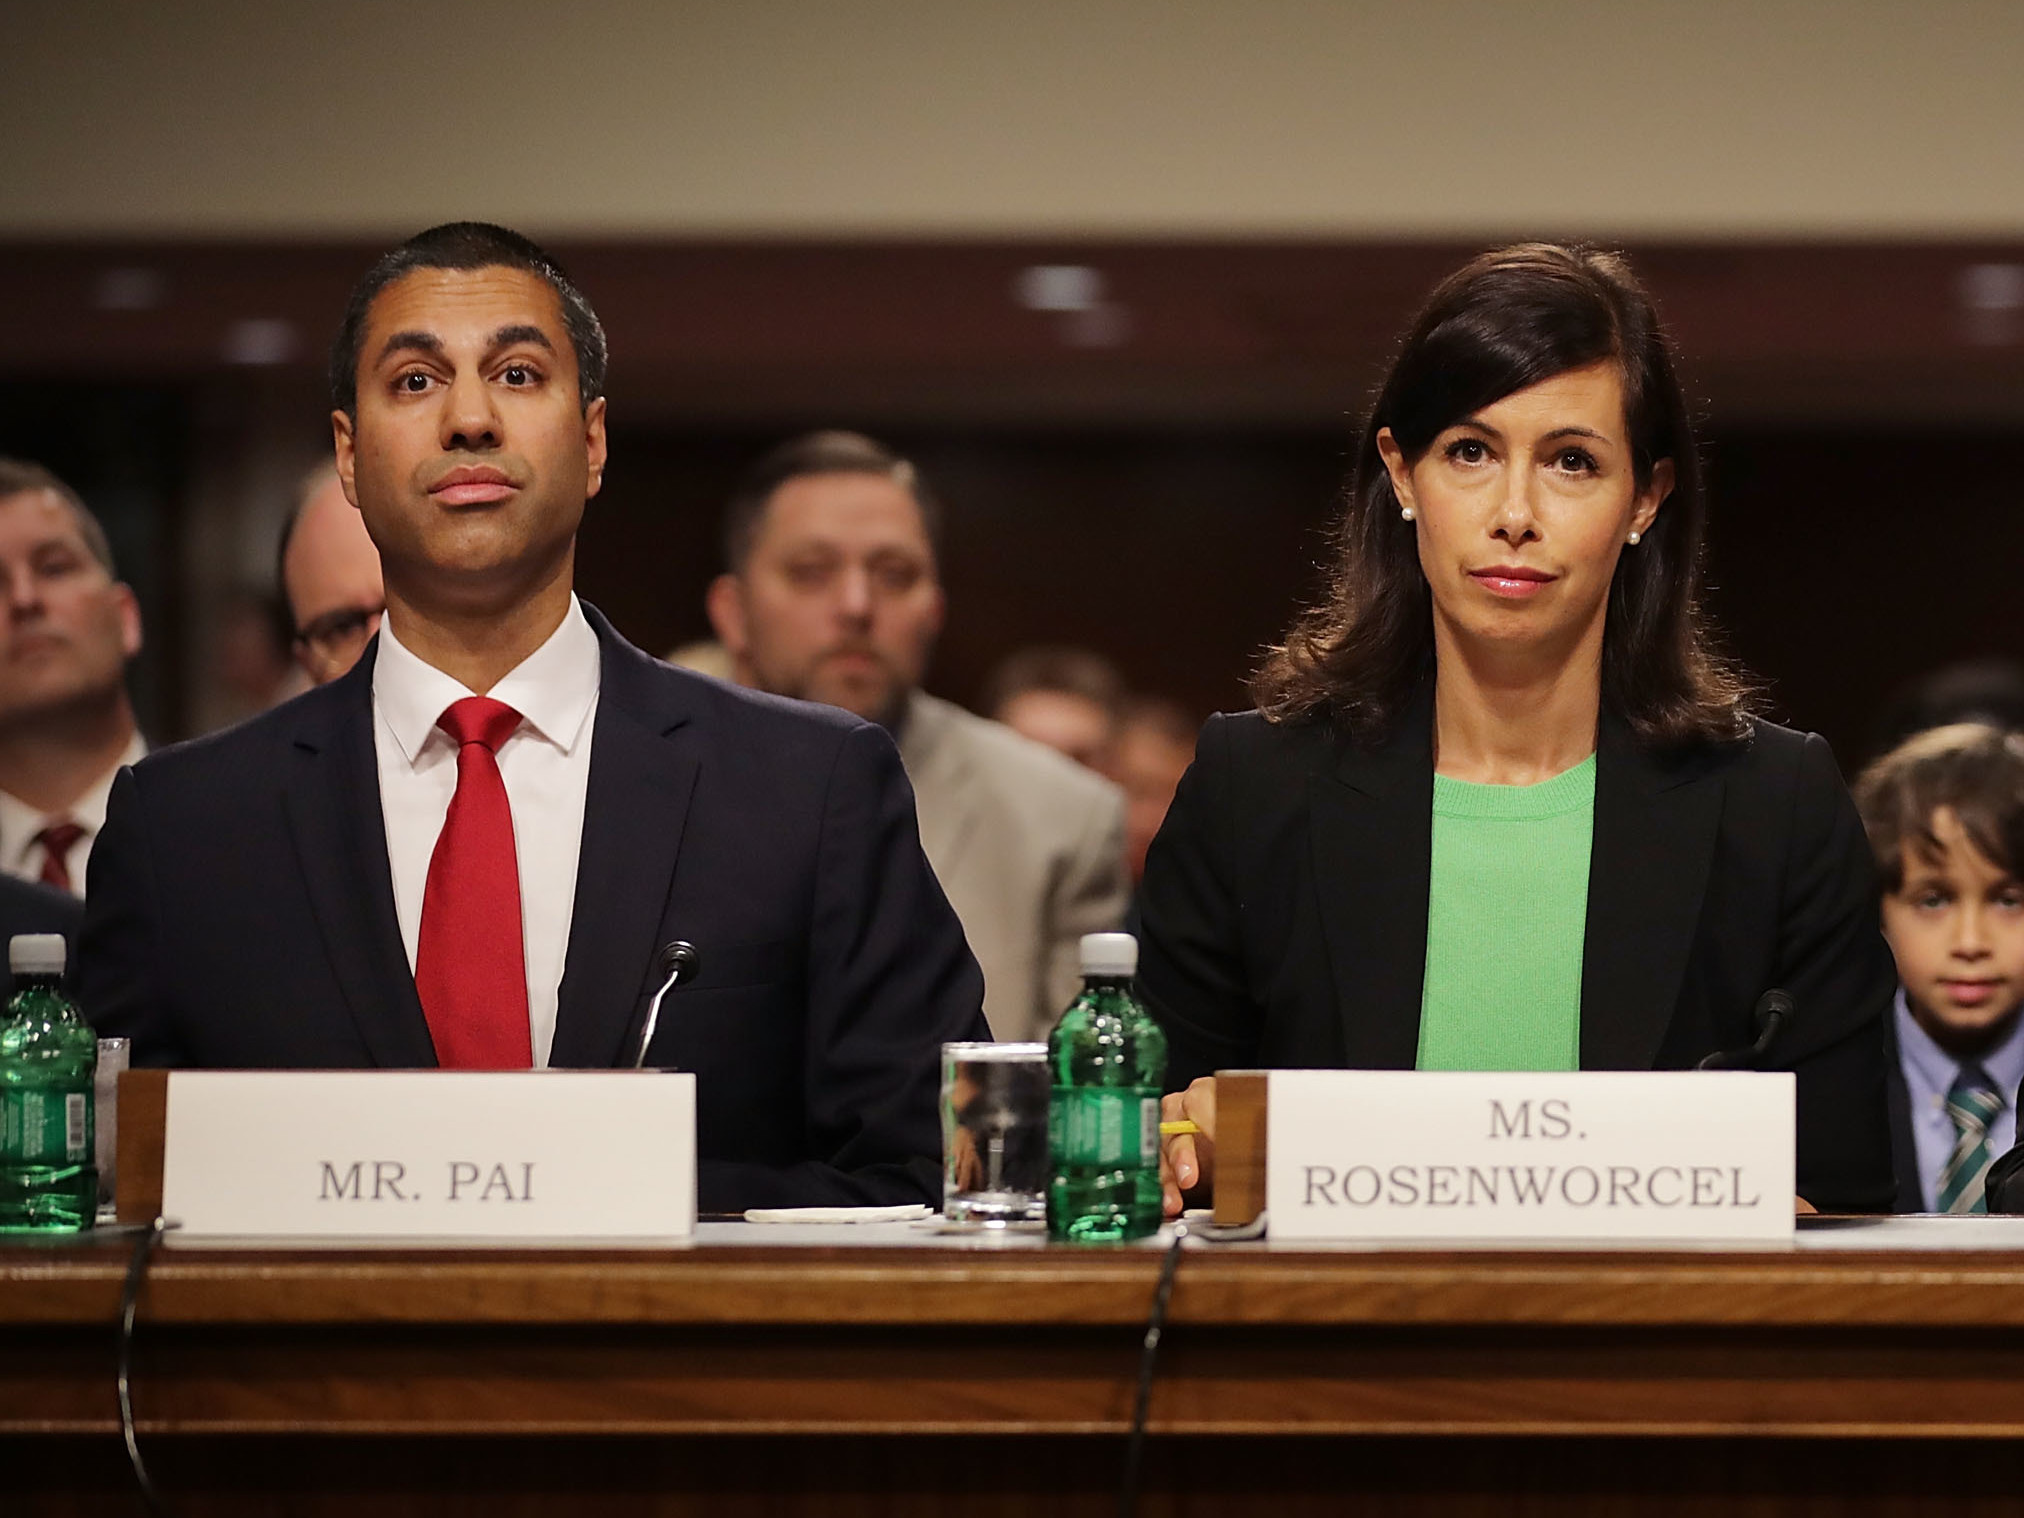 The Federal Communications Commission rollback of net neutrality went into effect today. FCC Chairman Ajit Pai championed the move while commissioner Jessica Rosenworcel opposed